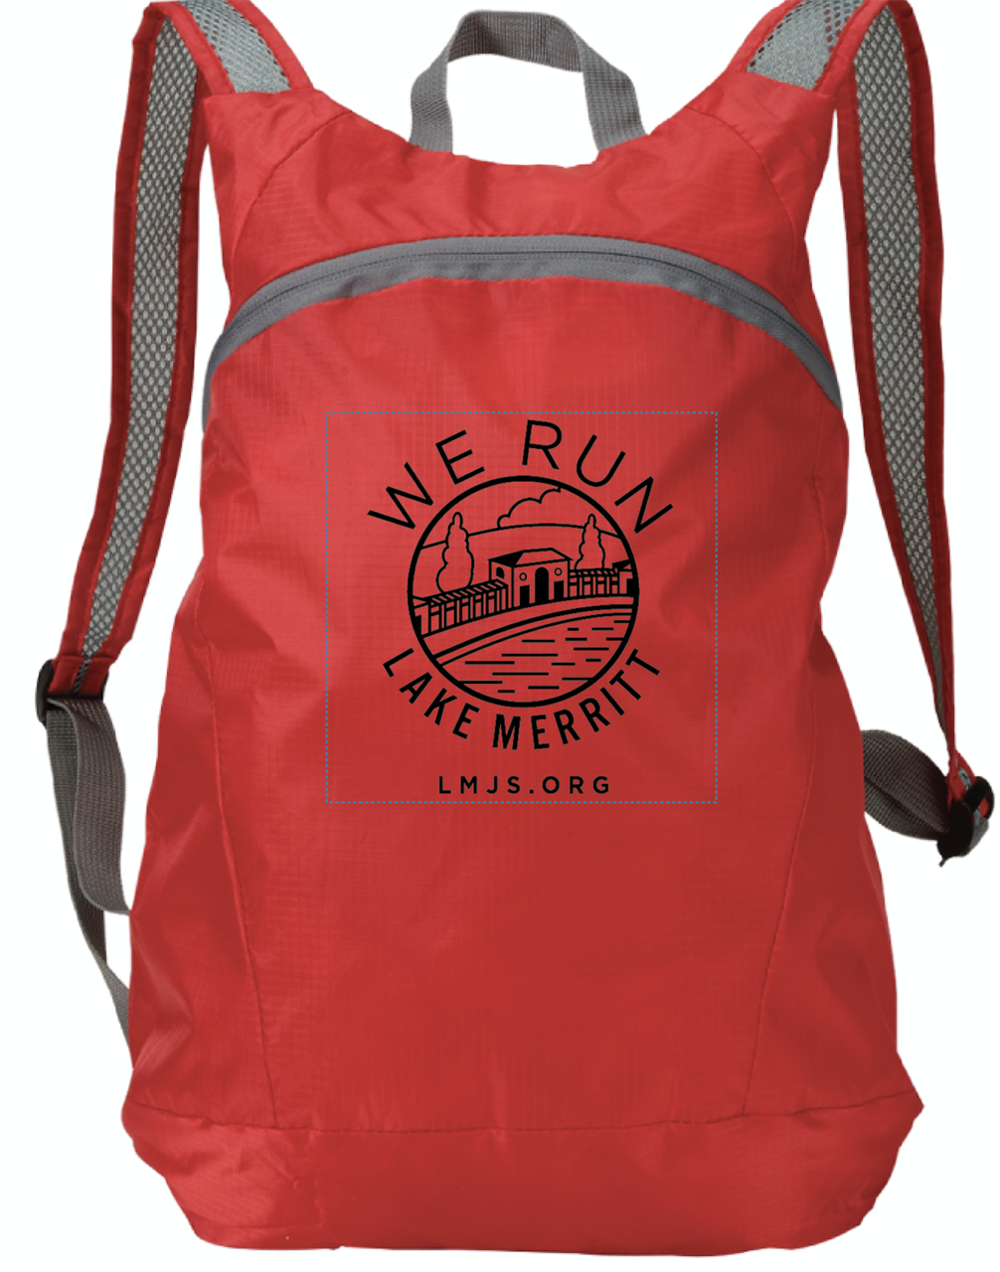 One bag per runner while supplies last